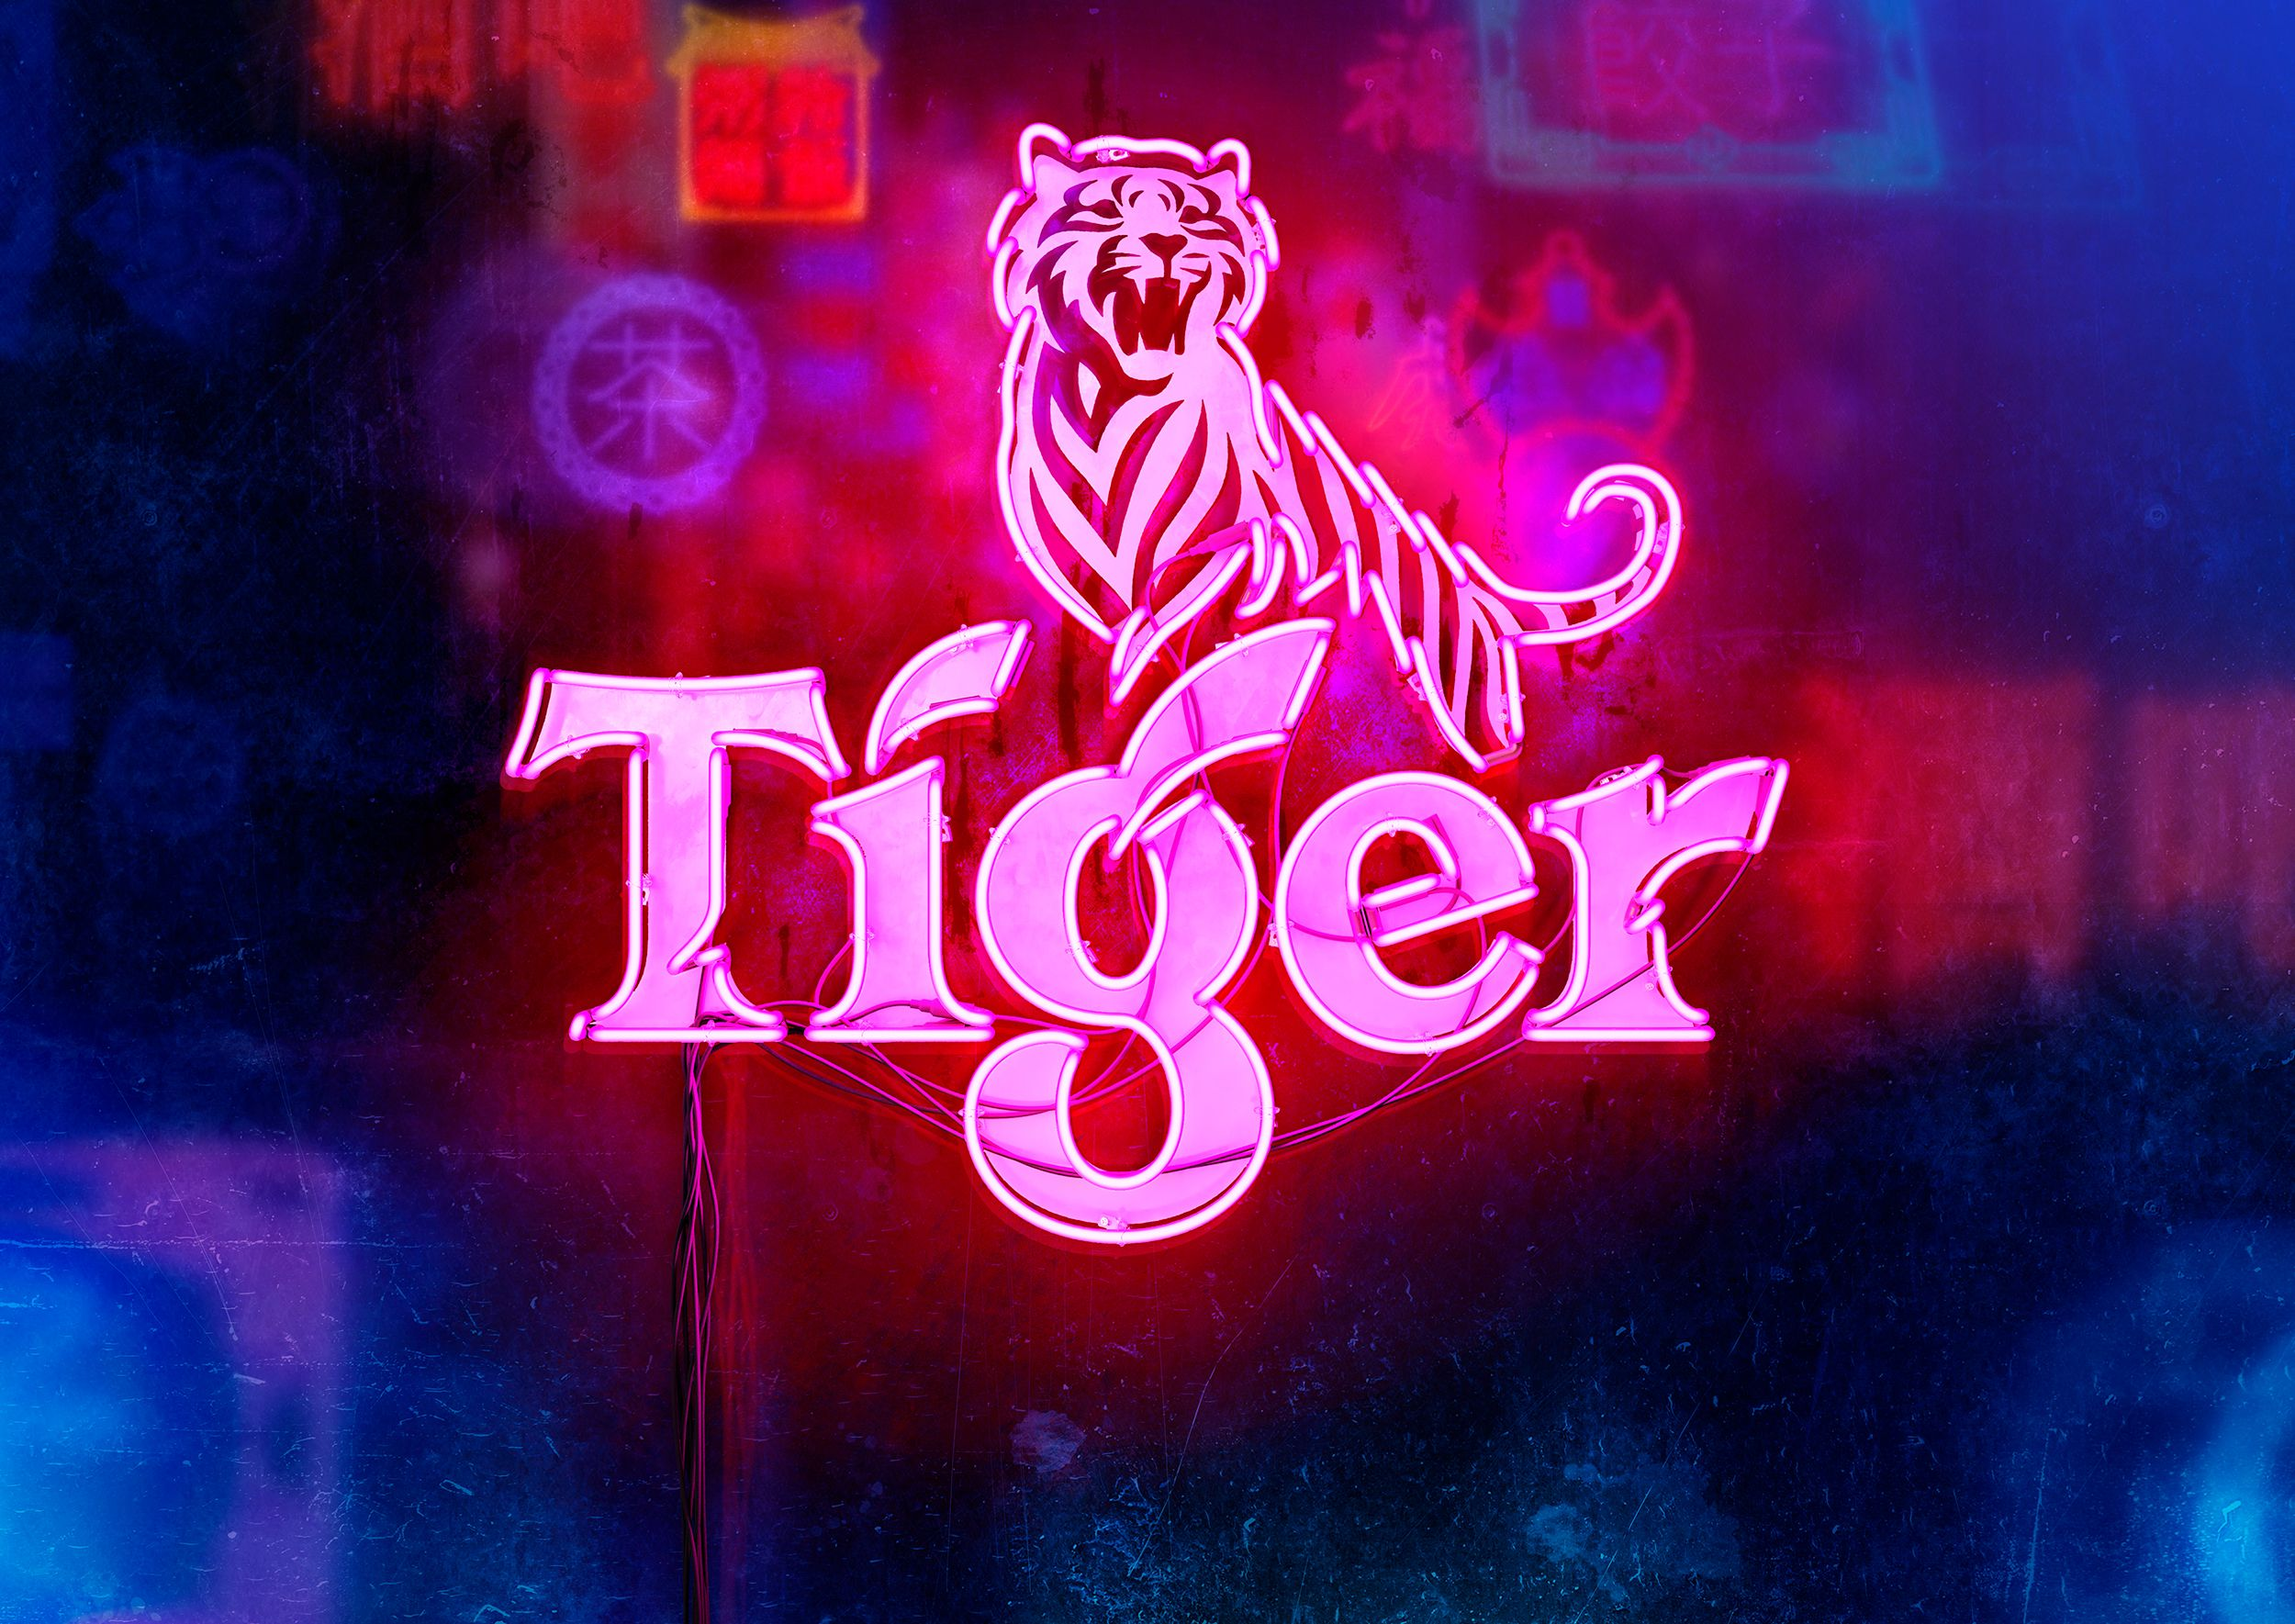 Consultez mon projet @Behance : \u201cTIGER BEER\u201d https://www.behance.net/gallery/53983551/TIGER-BEER